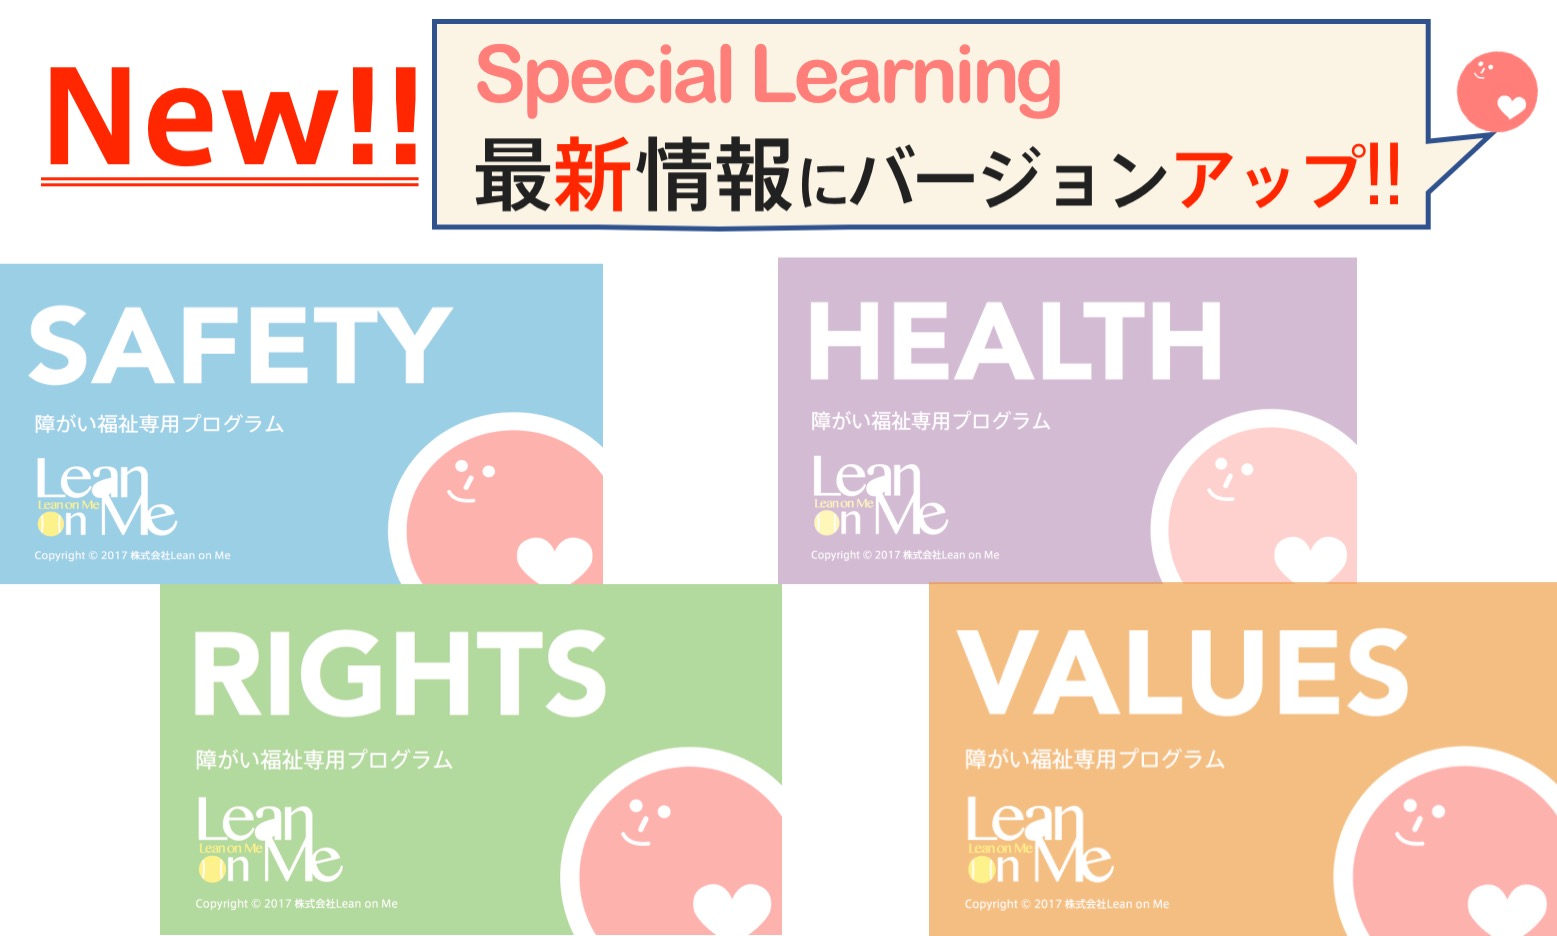 Special Learningがバージョンアップ!